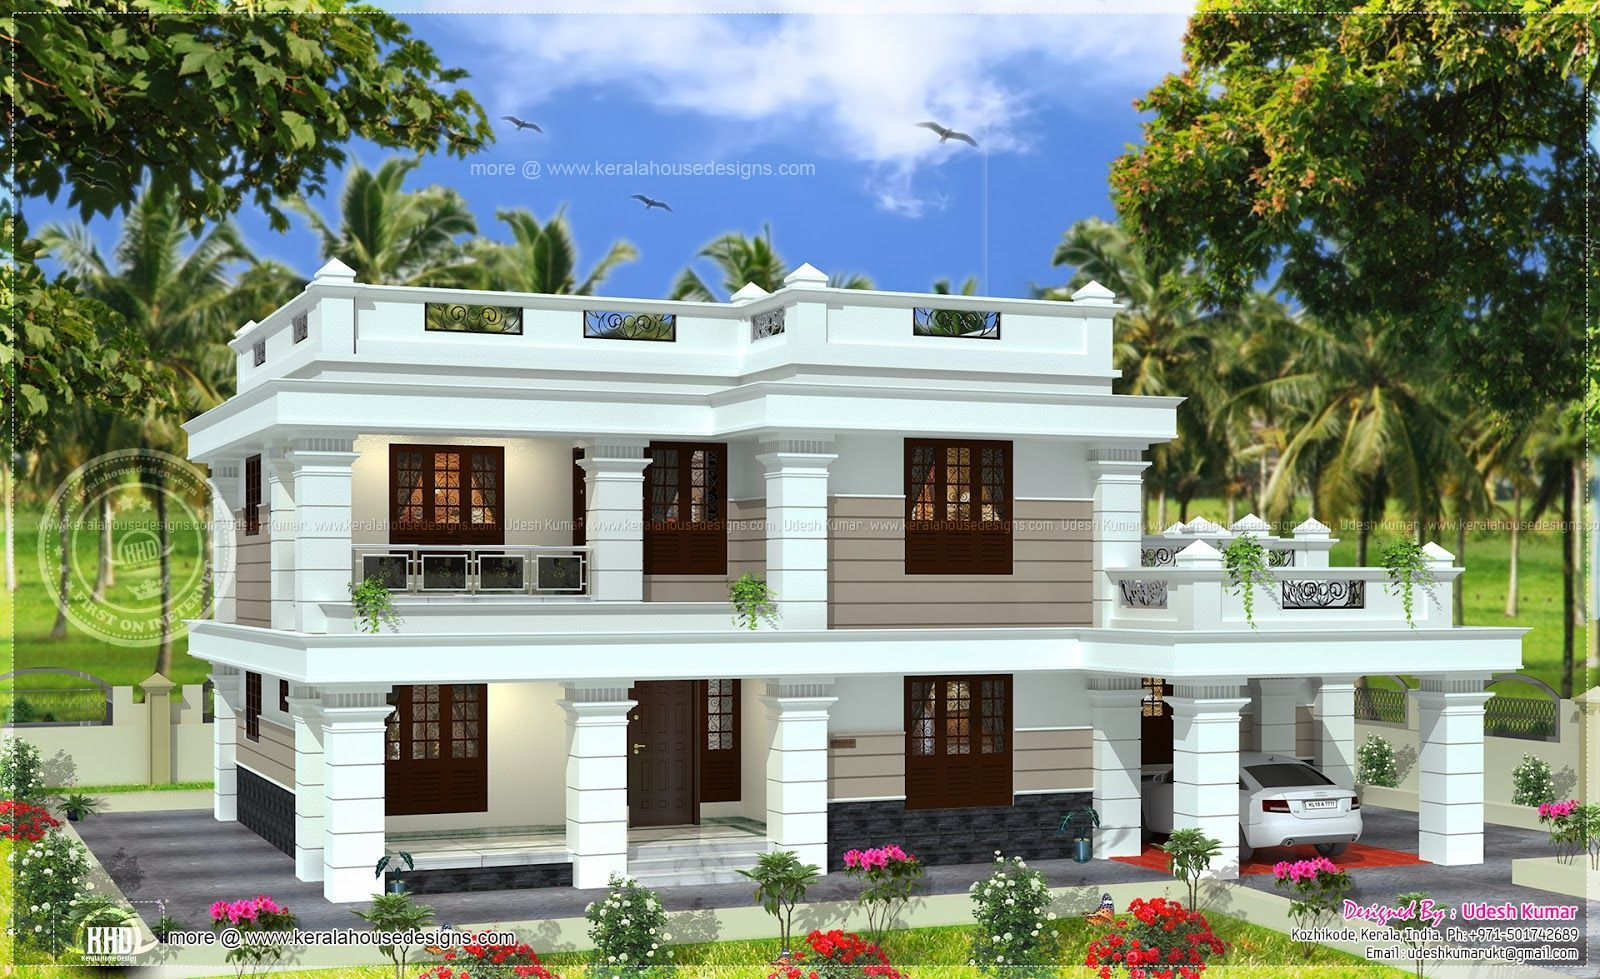 Image Result For Contemporary Style Roof Roofingideascreative Arhitektura Proekty Domov Dom